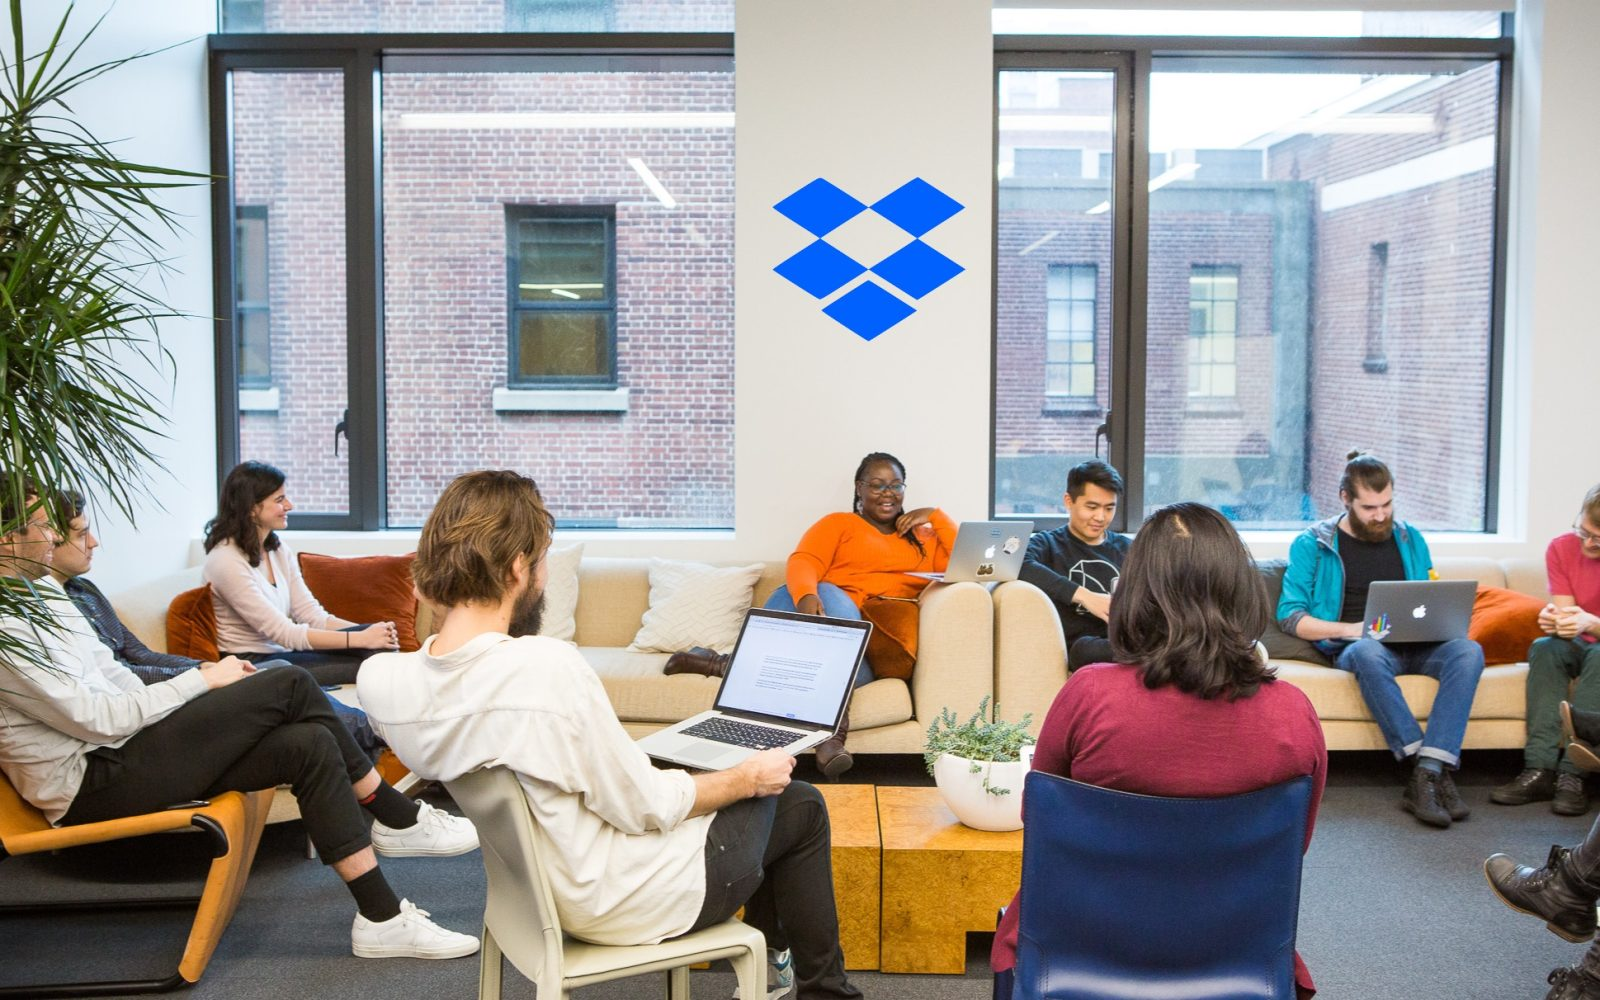 Dropbox upgrading paid storage tiers at no extra cost, 3TB plan now offered